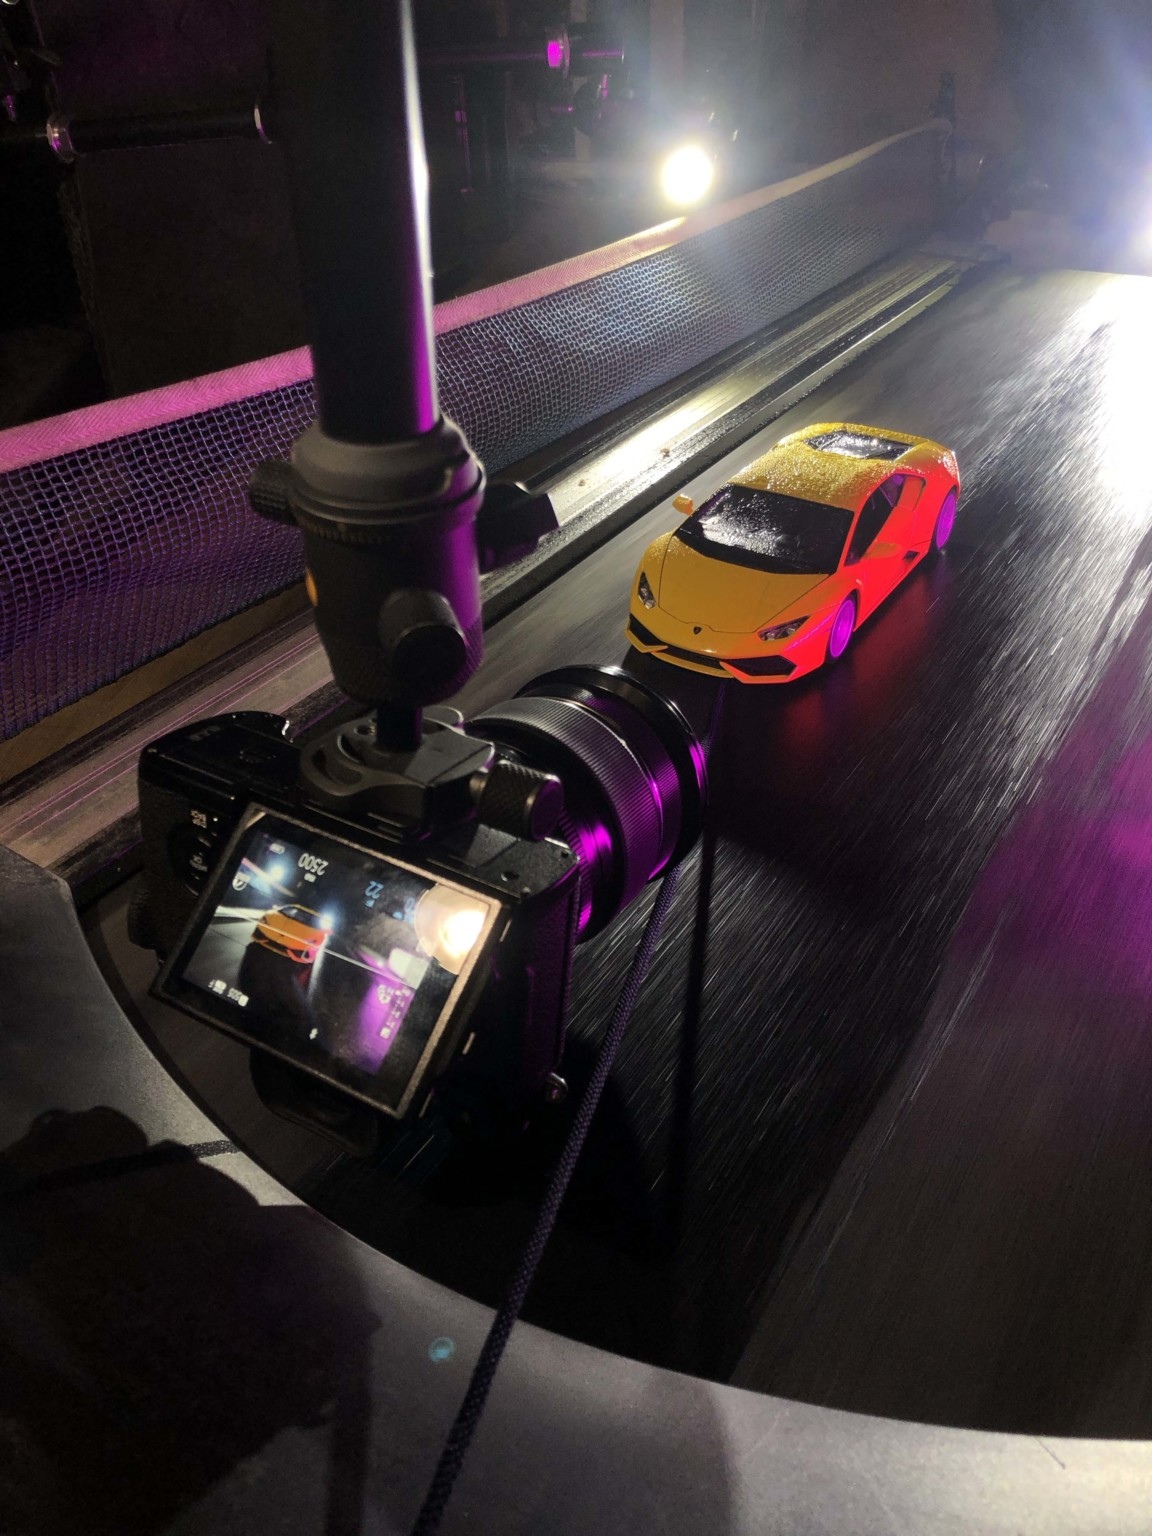 Lamborghini Toy Car Photography (2)